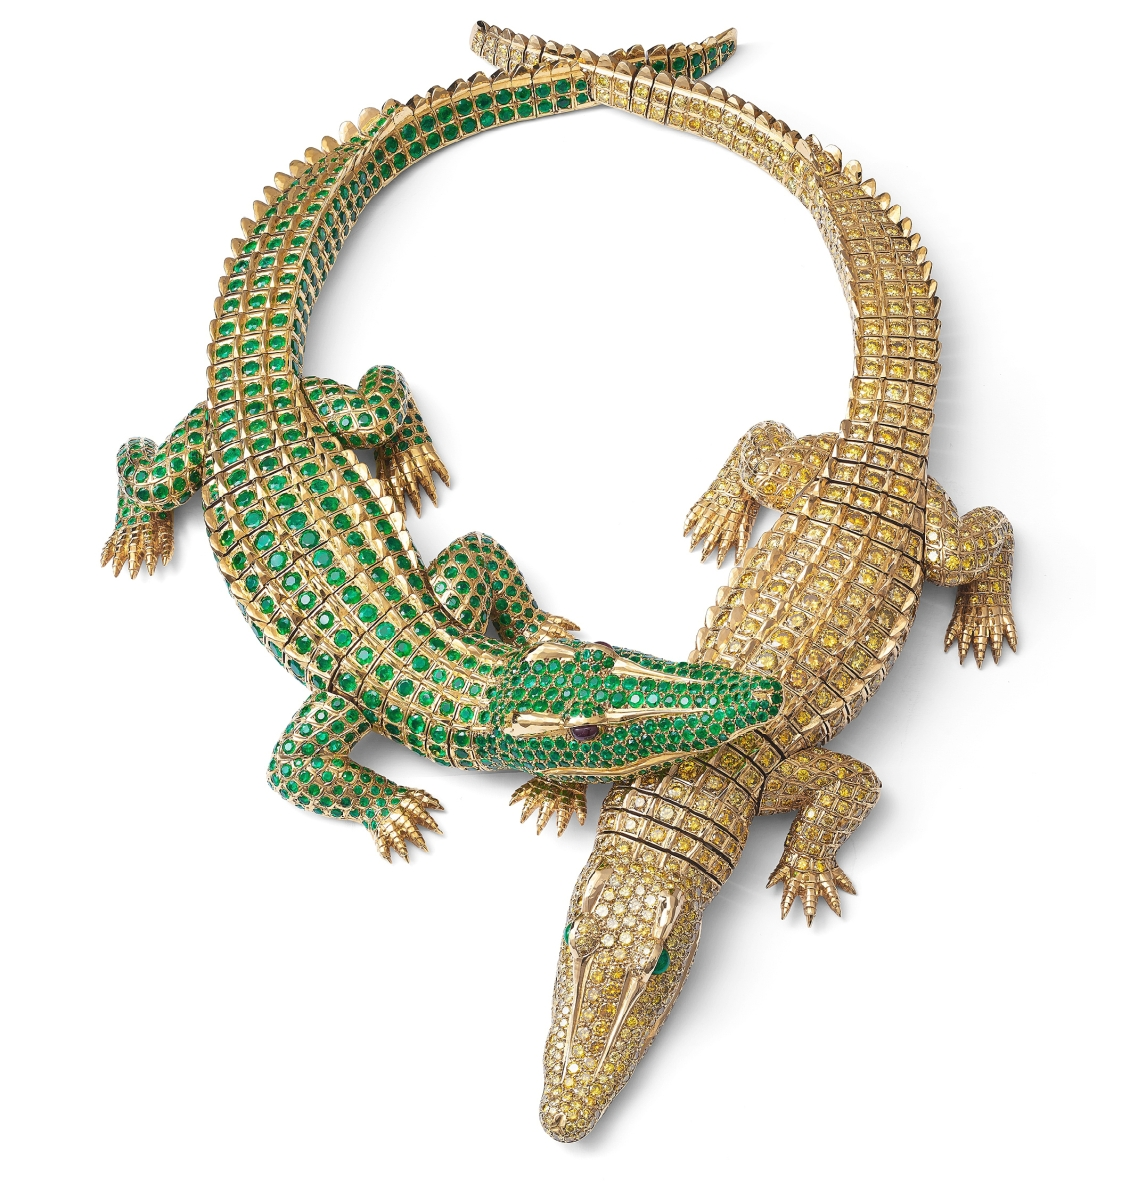 """According to legend, when actress María Félix commissioned this necklace, she carried live baby crocodiles into Cartier in Paris to serve as models for the design. The realistic sculpting of the gold includes the scutes of a crocodile's skin. There are 60.02 carats of fancy intense yellow diamonds and 66.86 carats of emeralds in the setting. From """"Beautiful Creatures."""" Credit: Nils Herrmann, Cartier Collection © Cartier"""